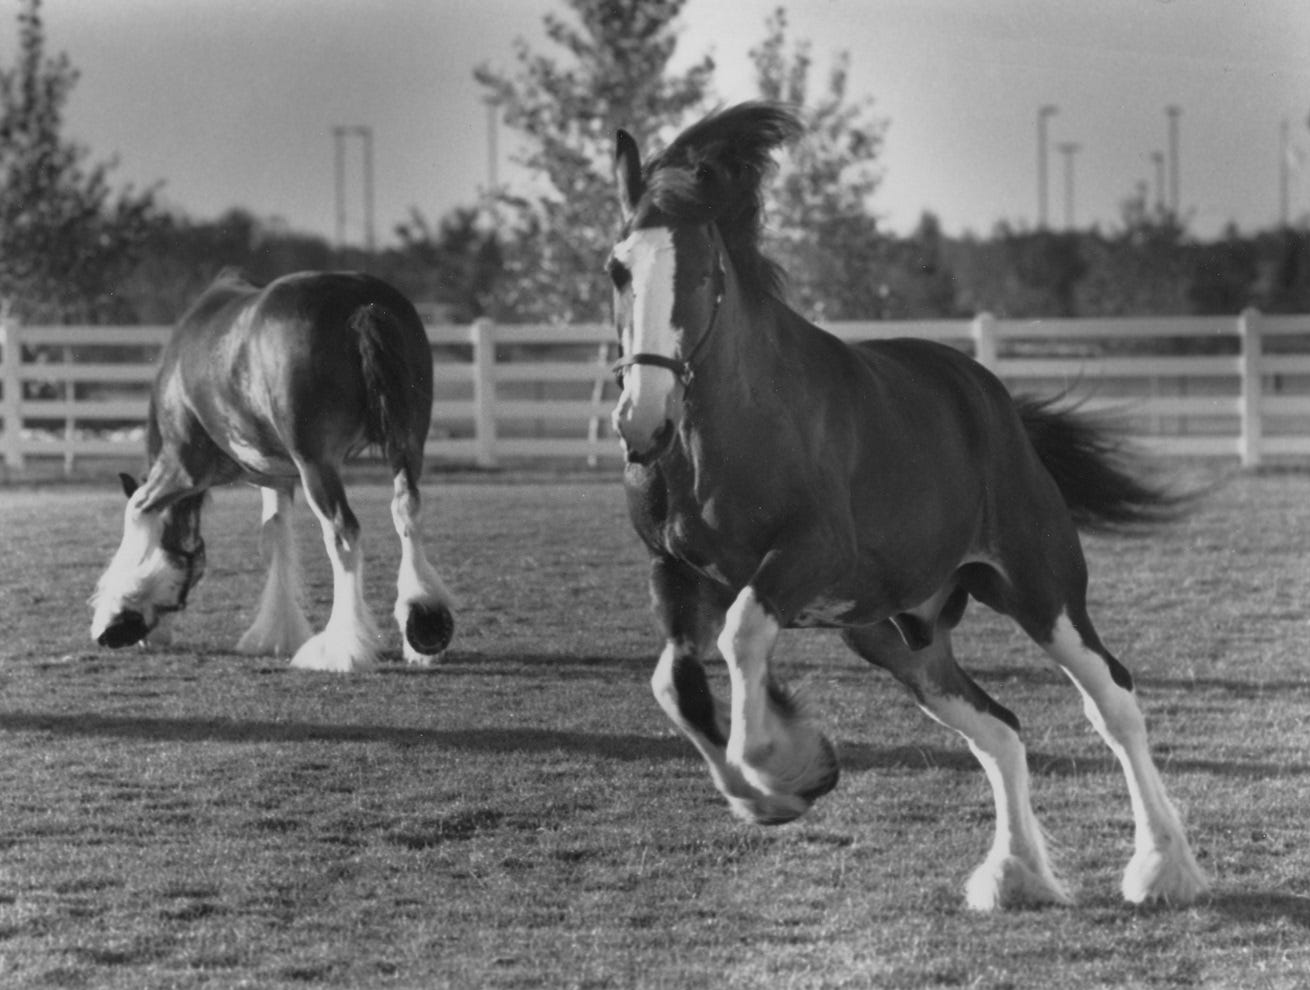 Budweiser Clydesdales Robby and Dewery frolic during their morning exercise at Anheuser-Busch in Fort Collin in September 1990.